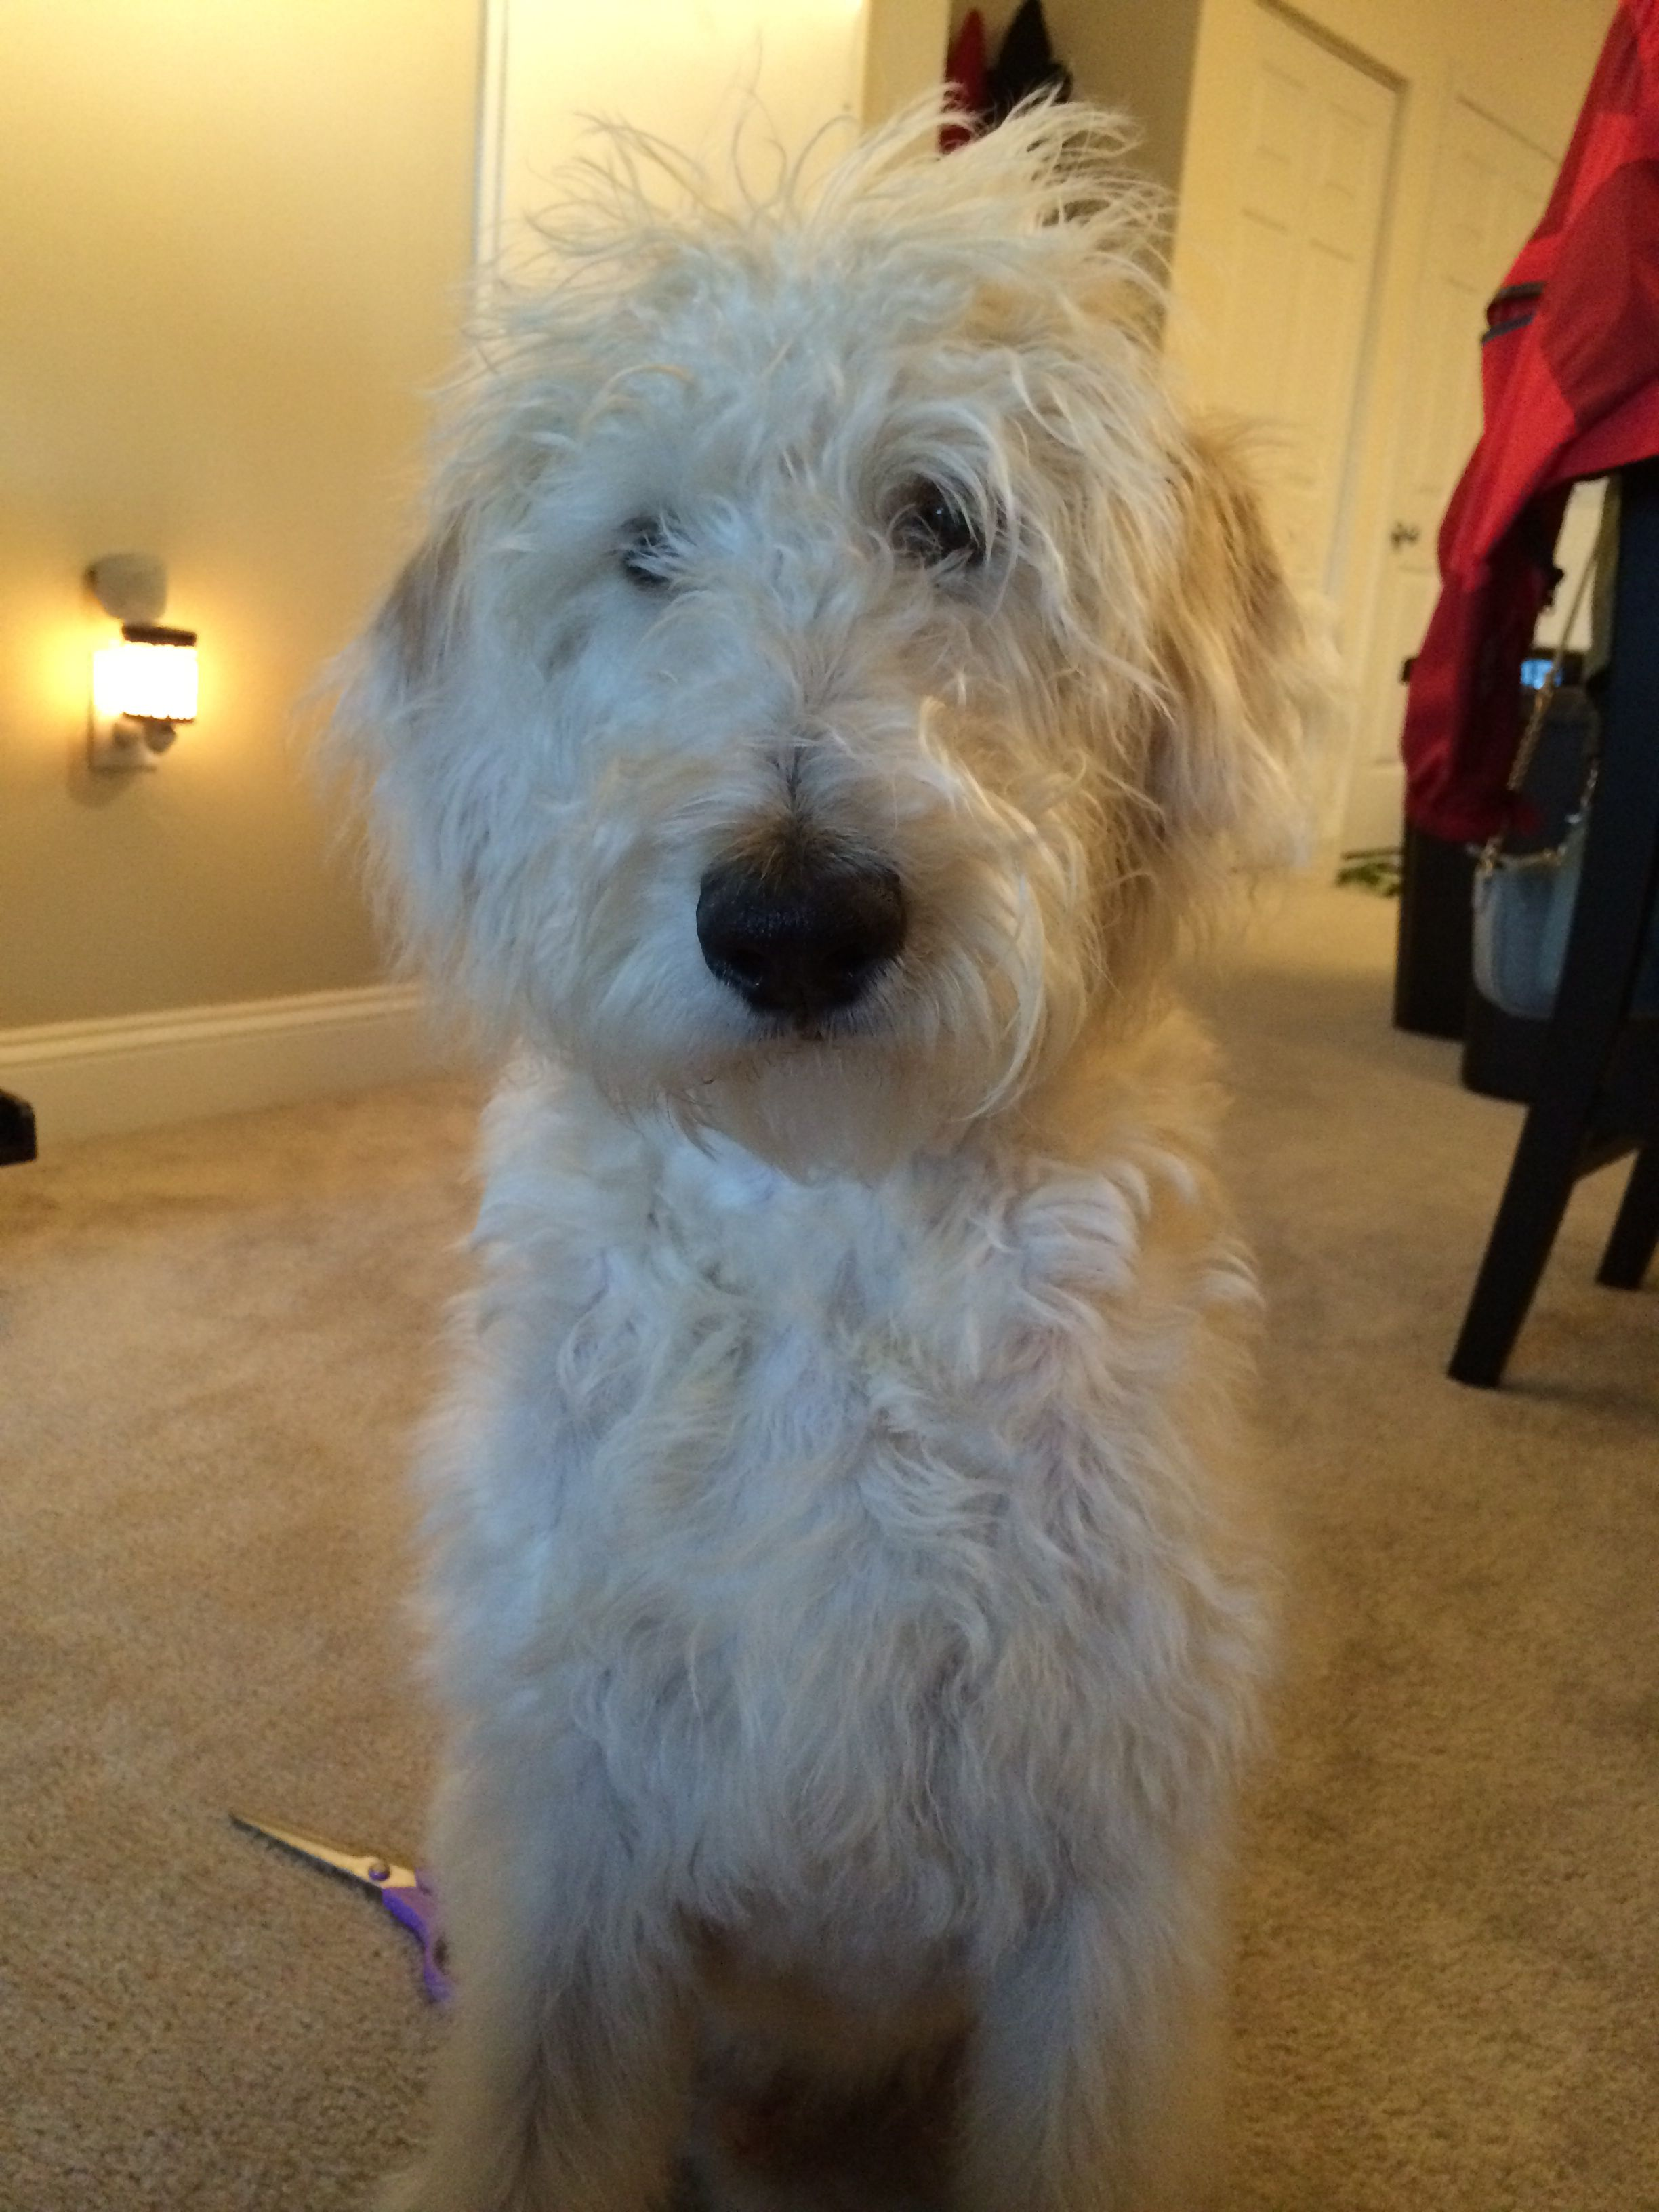 Our labradoodle puppy 6 months old